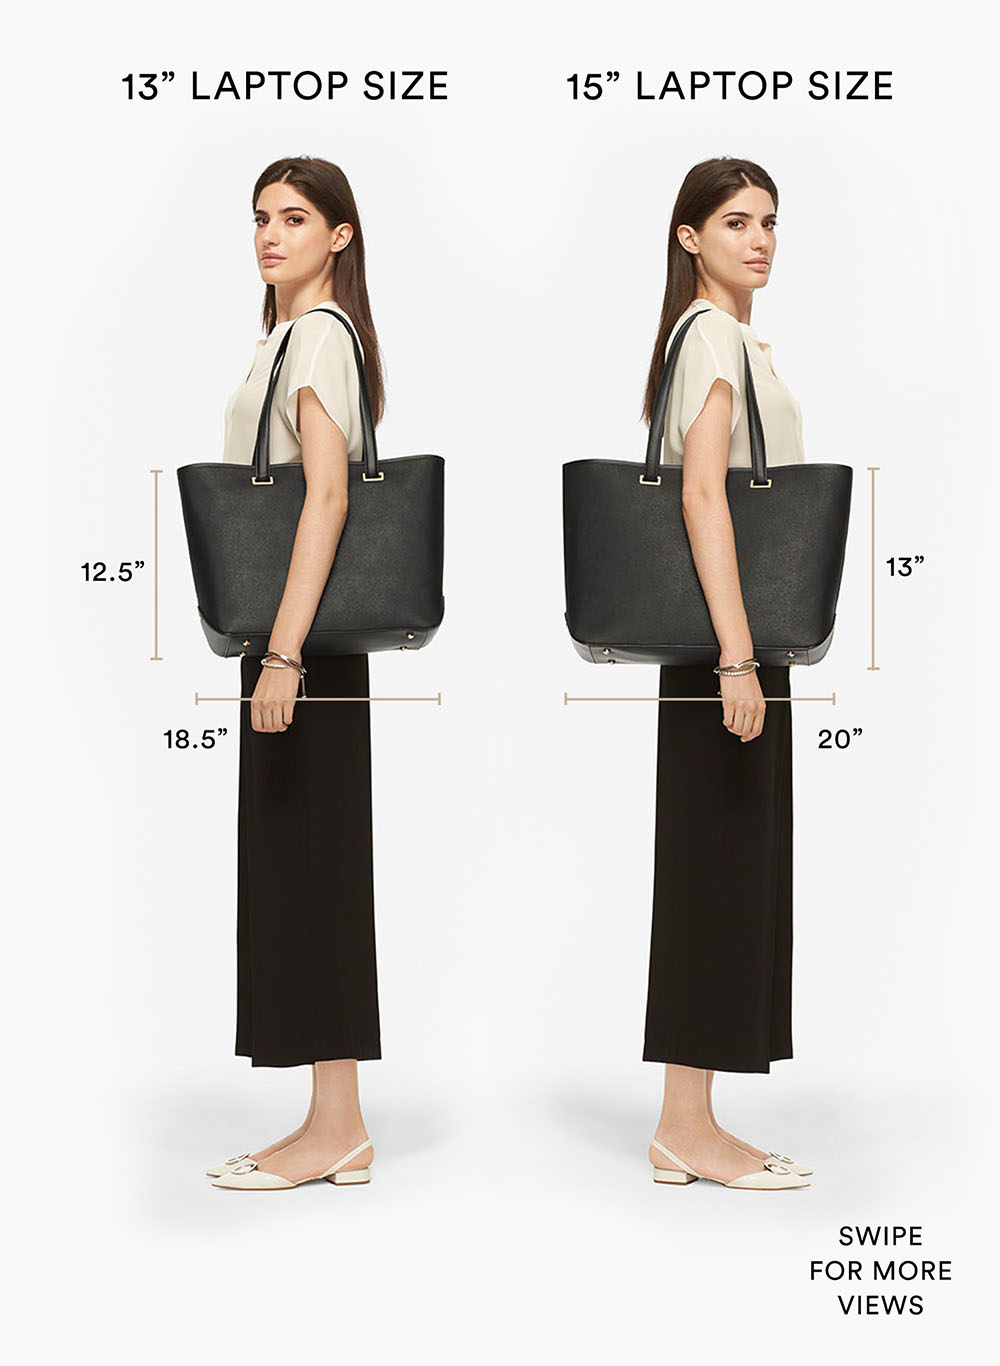 Compare the Seville laptop tote size, 13